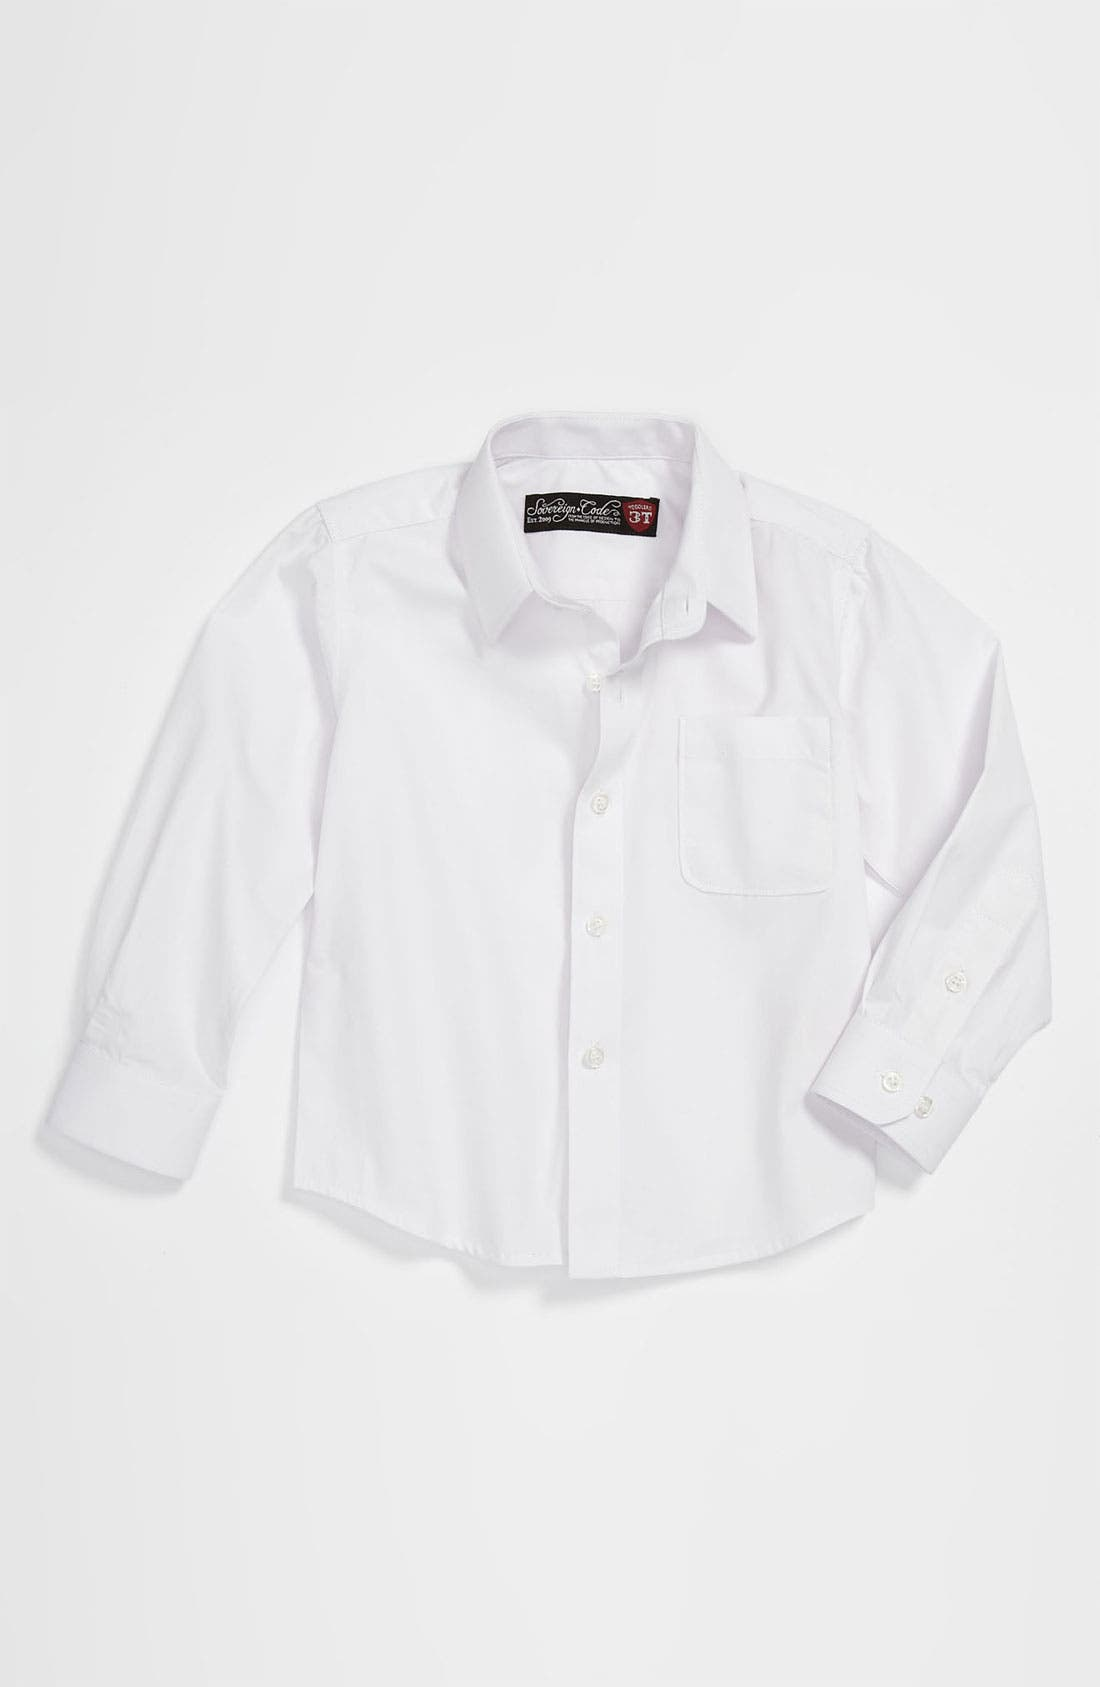 Alternate Image 1 Selected - Sovereign Code Woven Shirt (Infant)